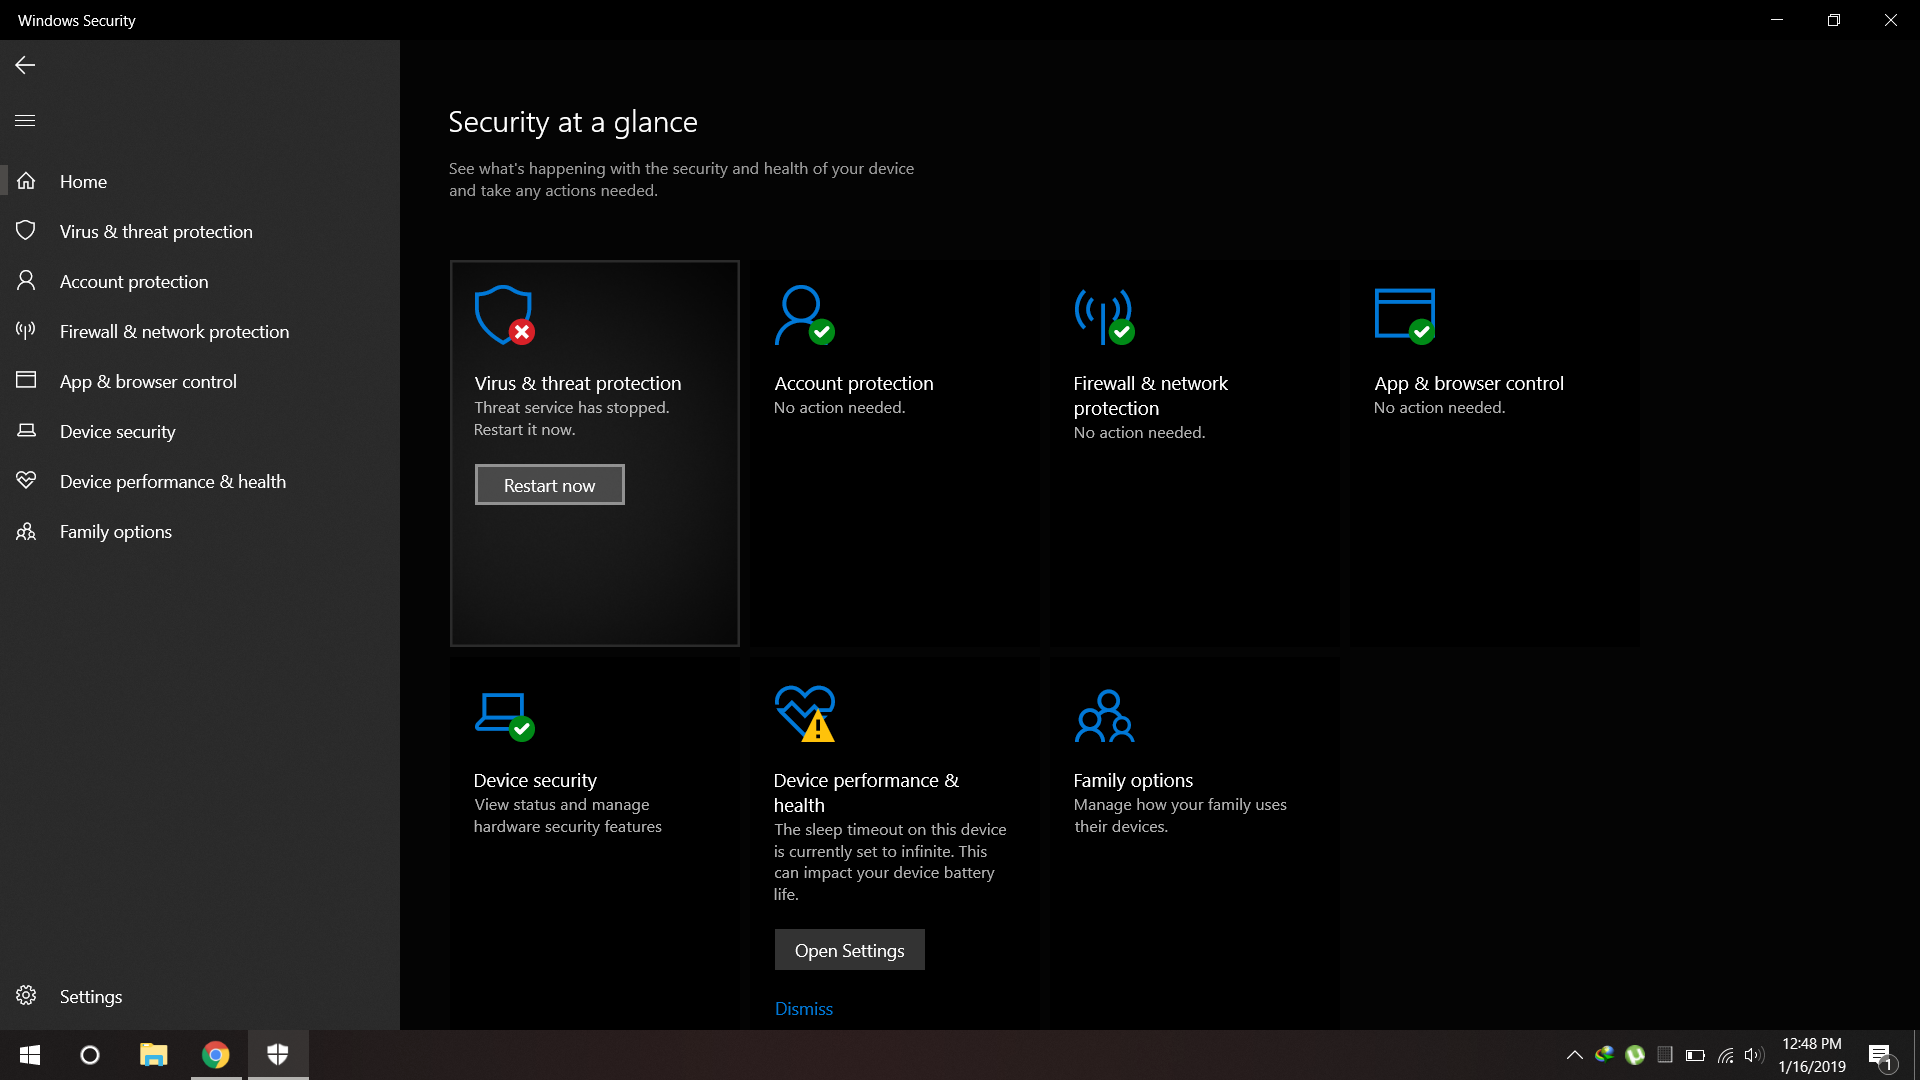 Windows Defender - Virus and Threat Protection - Threat service has stopped 15a44fb7-1139-40ea-a034-4c77d094cad1?upload=true.png